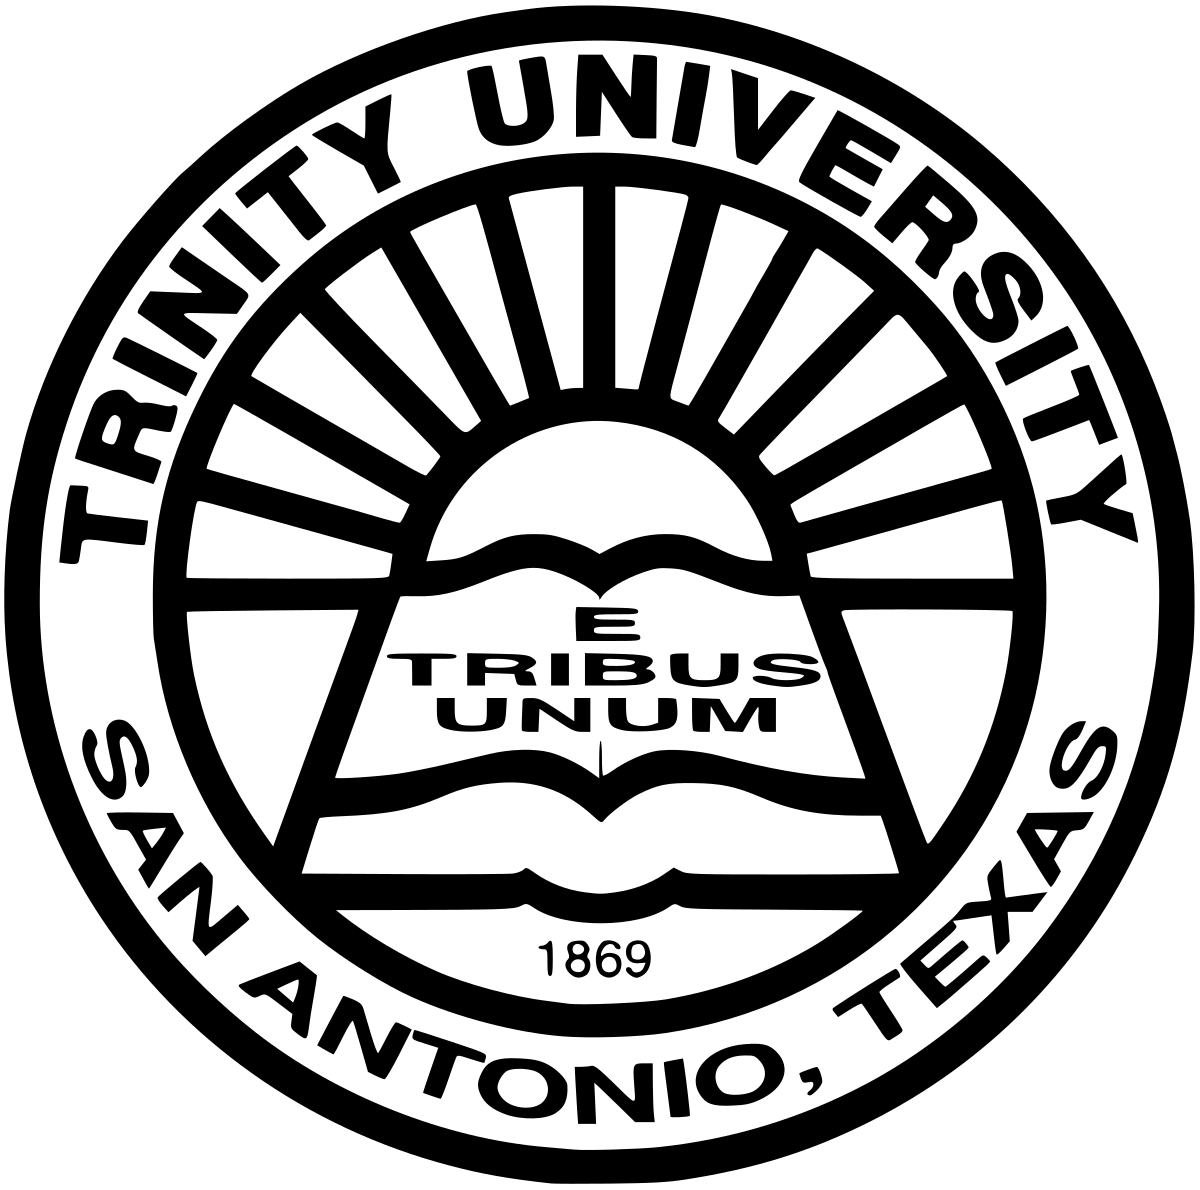 Republic drawing village life. Trinity university texas wikipedia